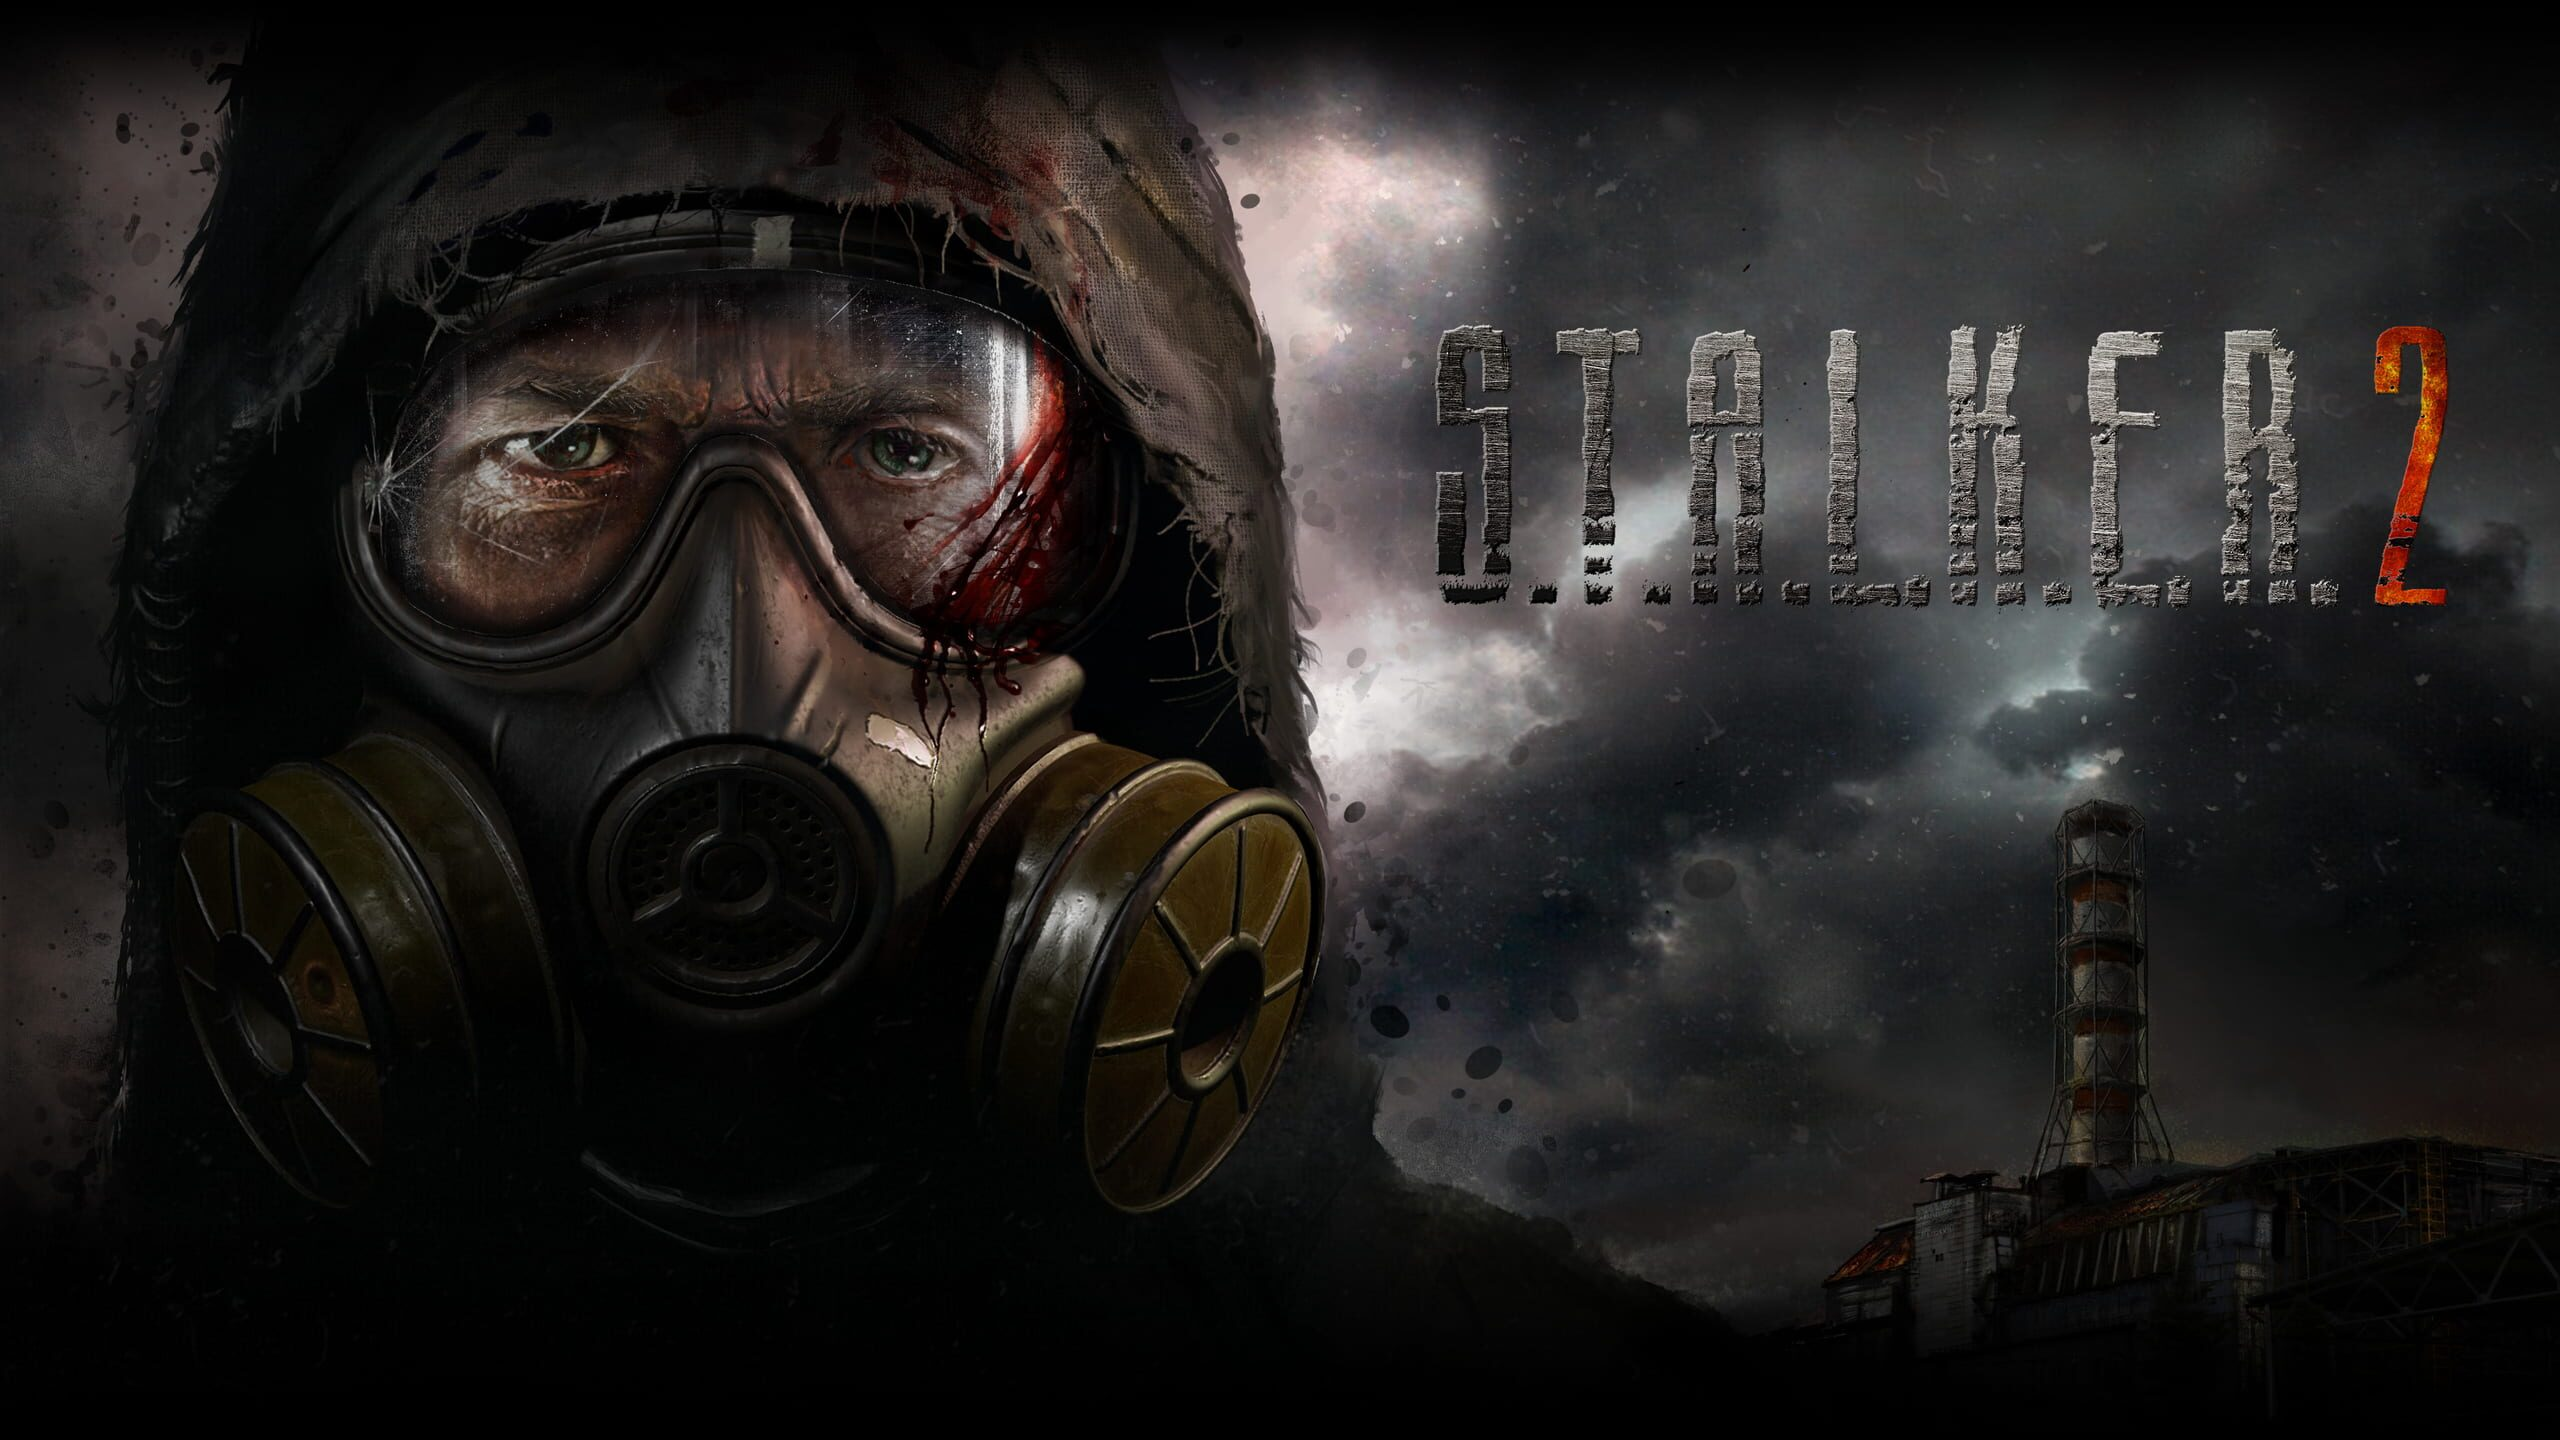 game cover art for S.T.A.L.K.E.R. 2